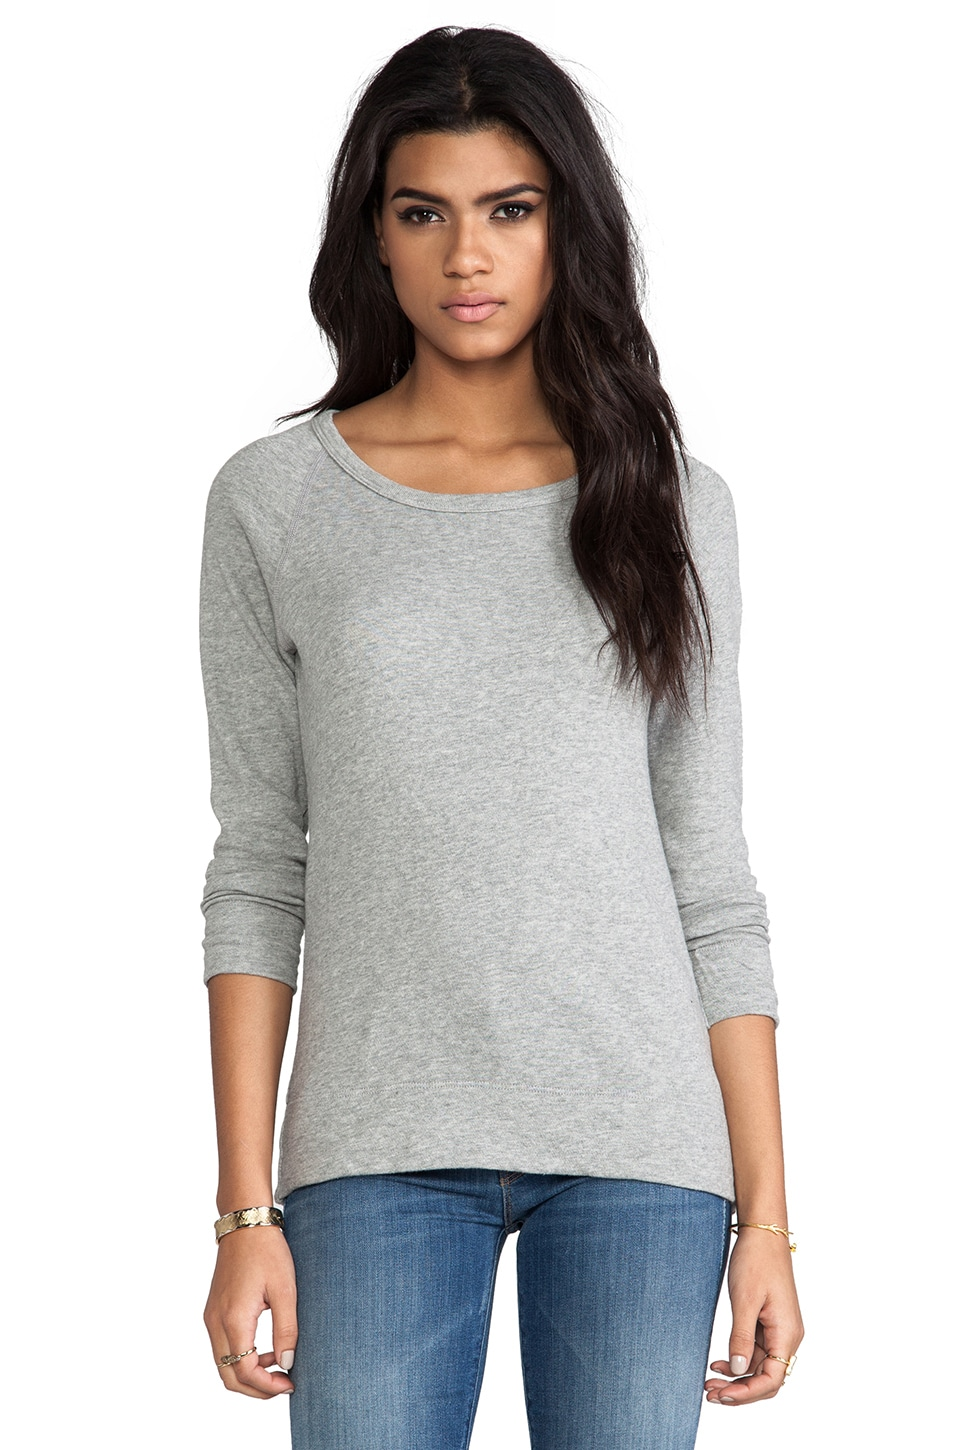 James Perse Vintage Cotton Raglan Pullover in Heather Grey